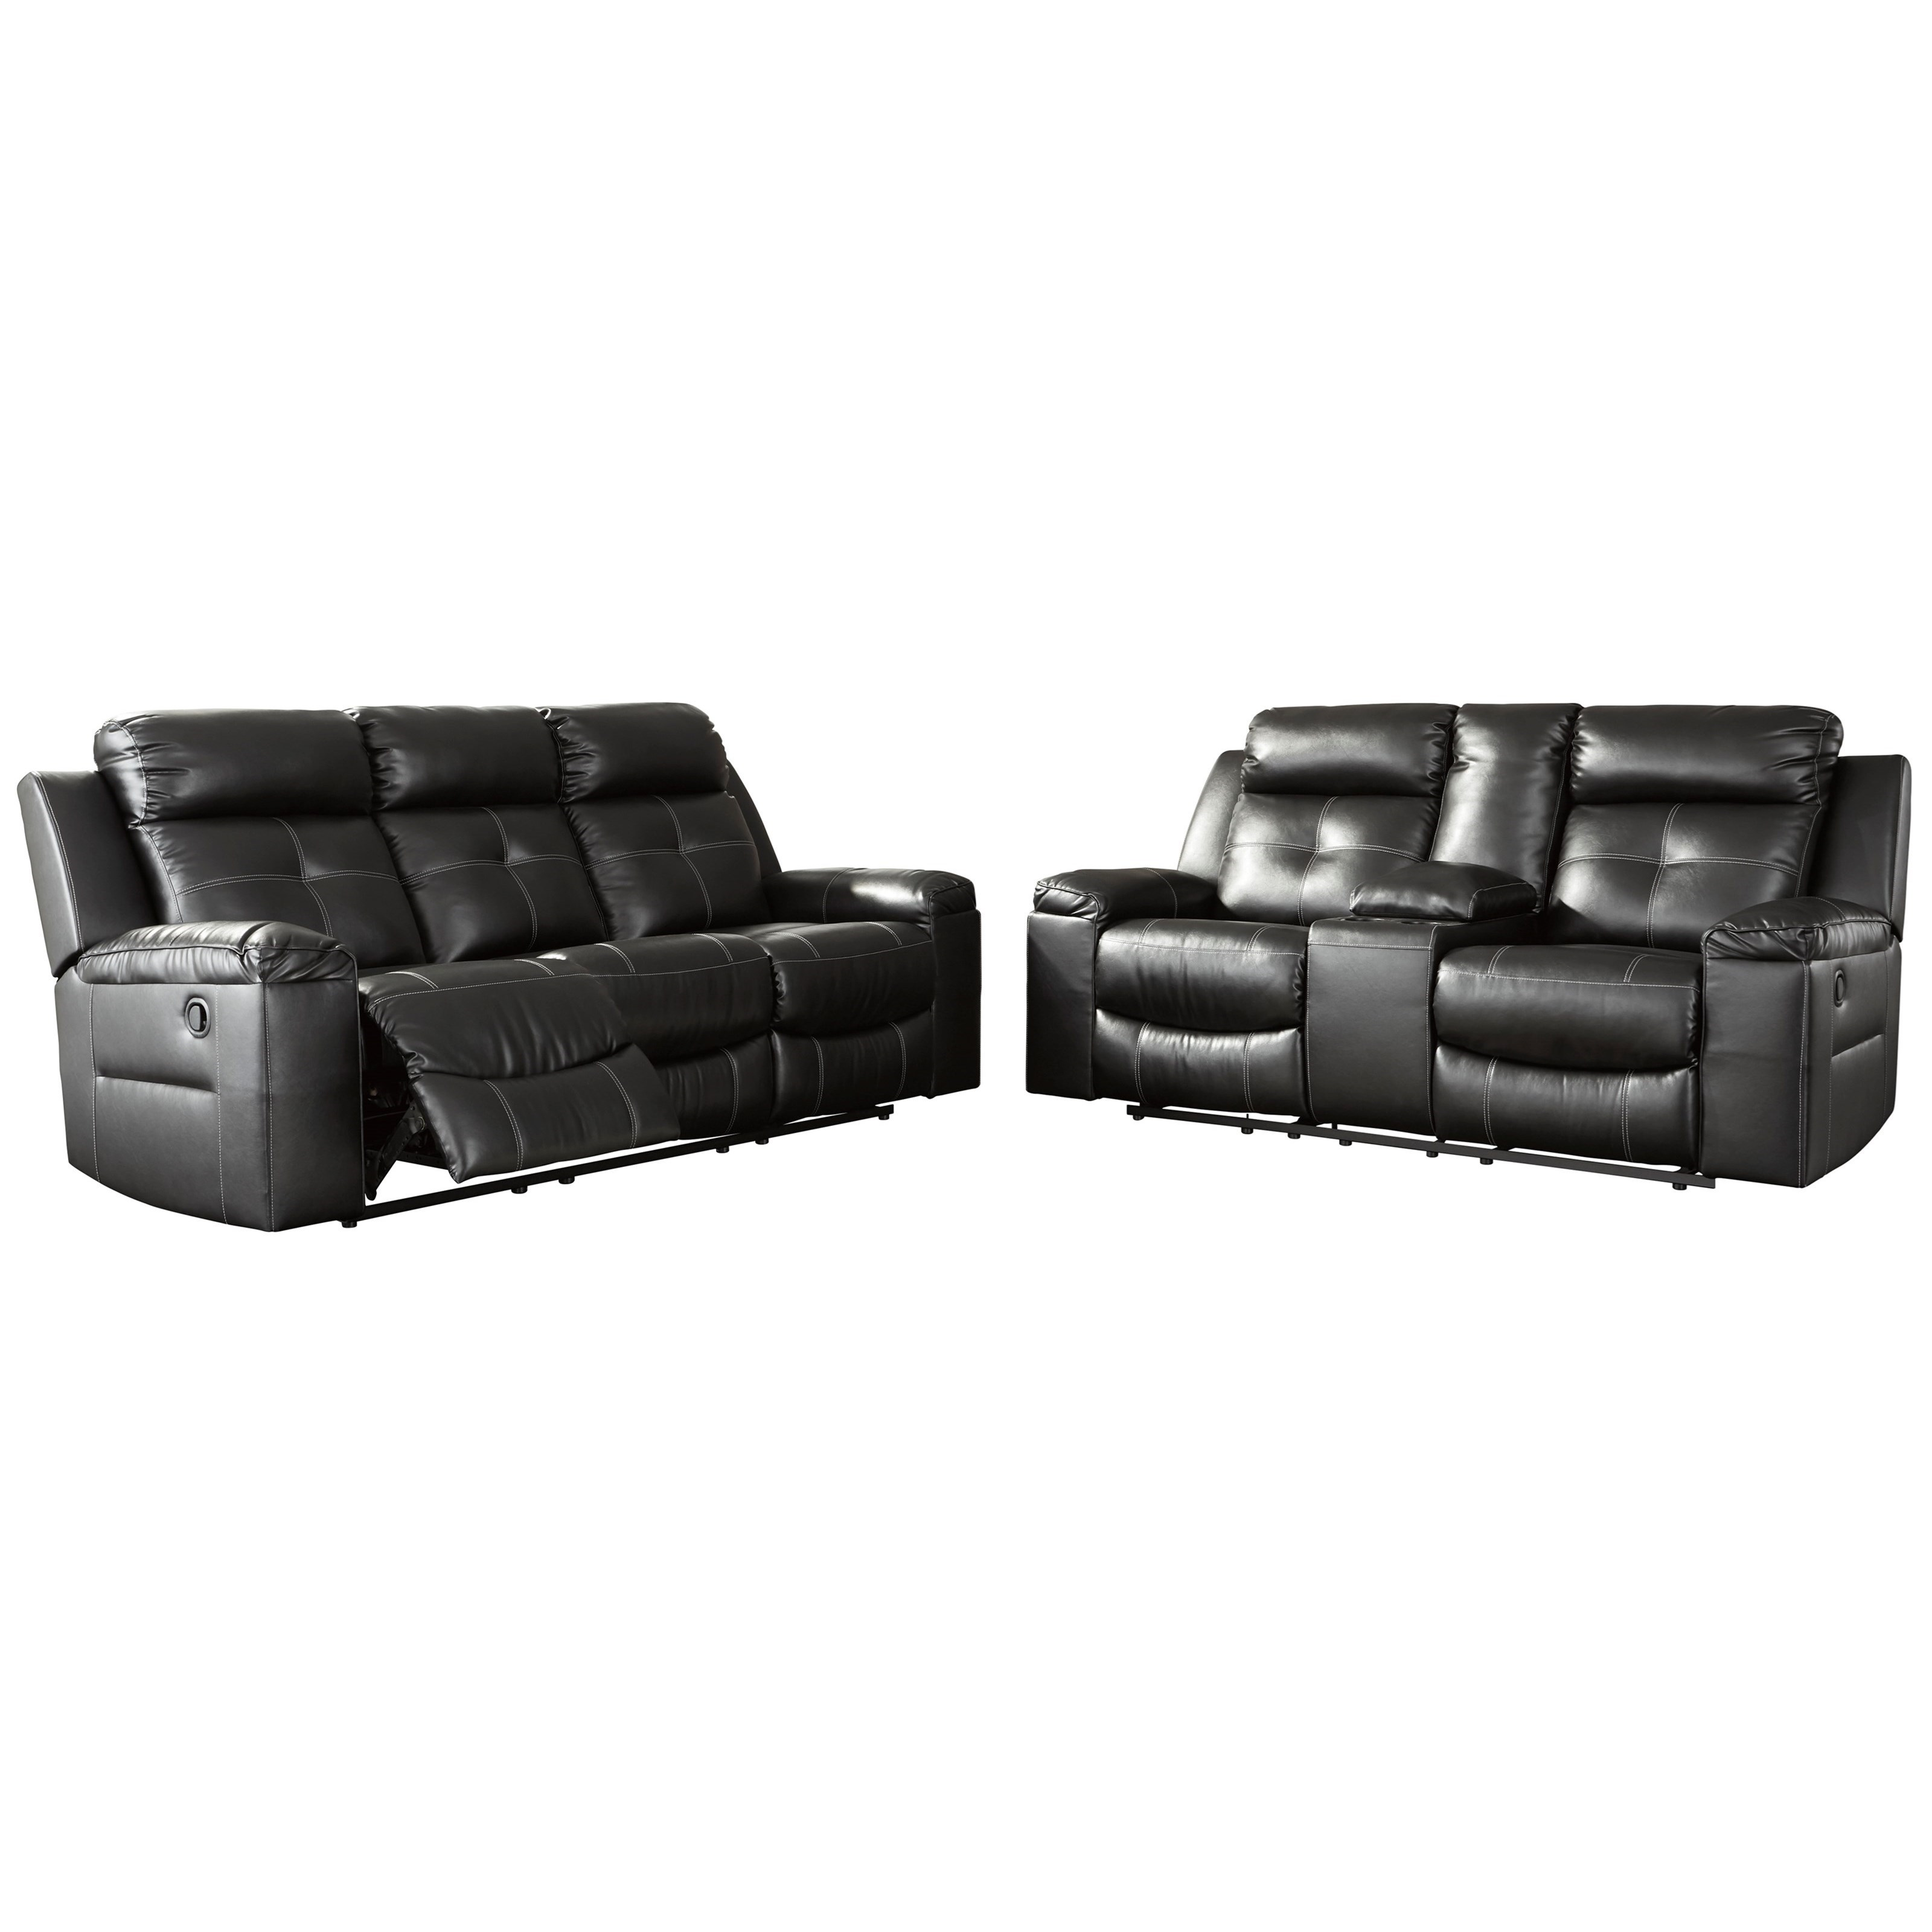 Kempten Reclining Living Room Group by Ashley (Signature Design) at Johnny Janosik